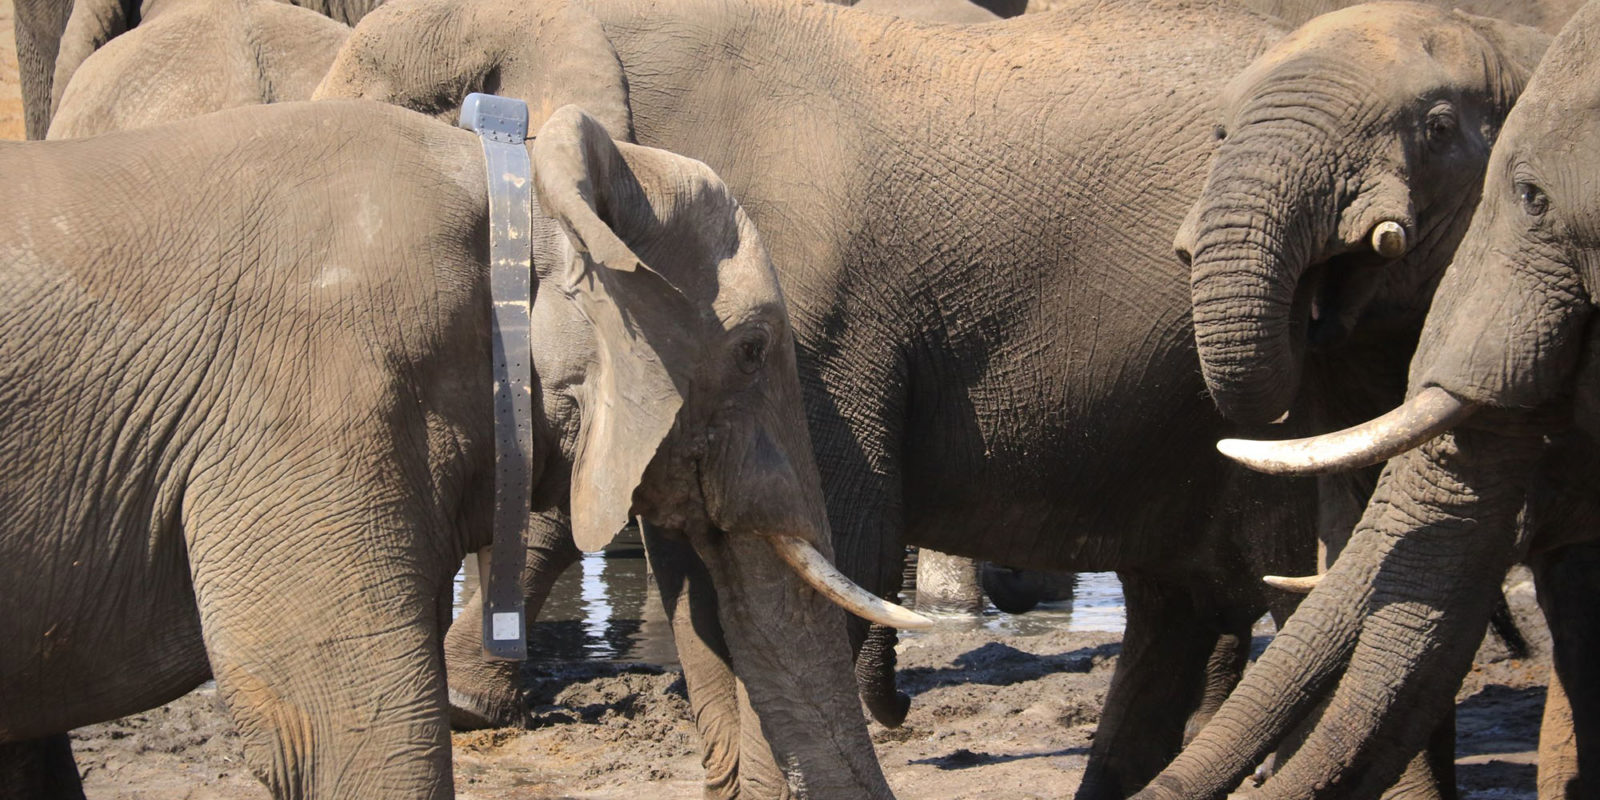 Outrage over 'unethical' Botswana elephant hunt